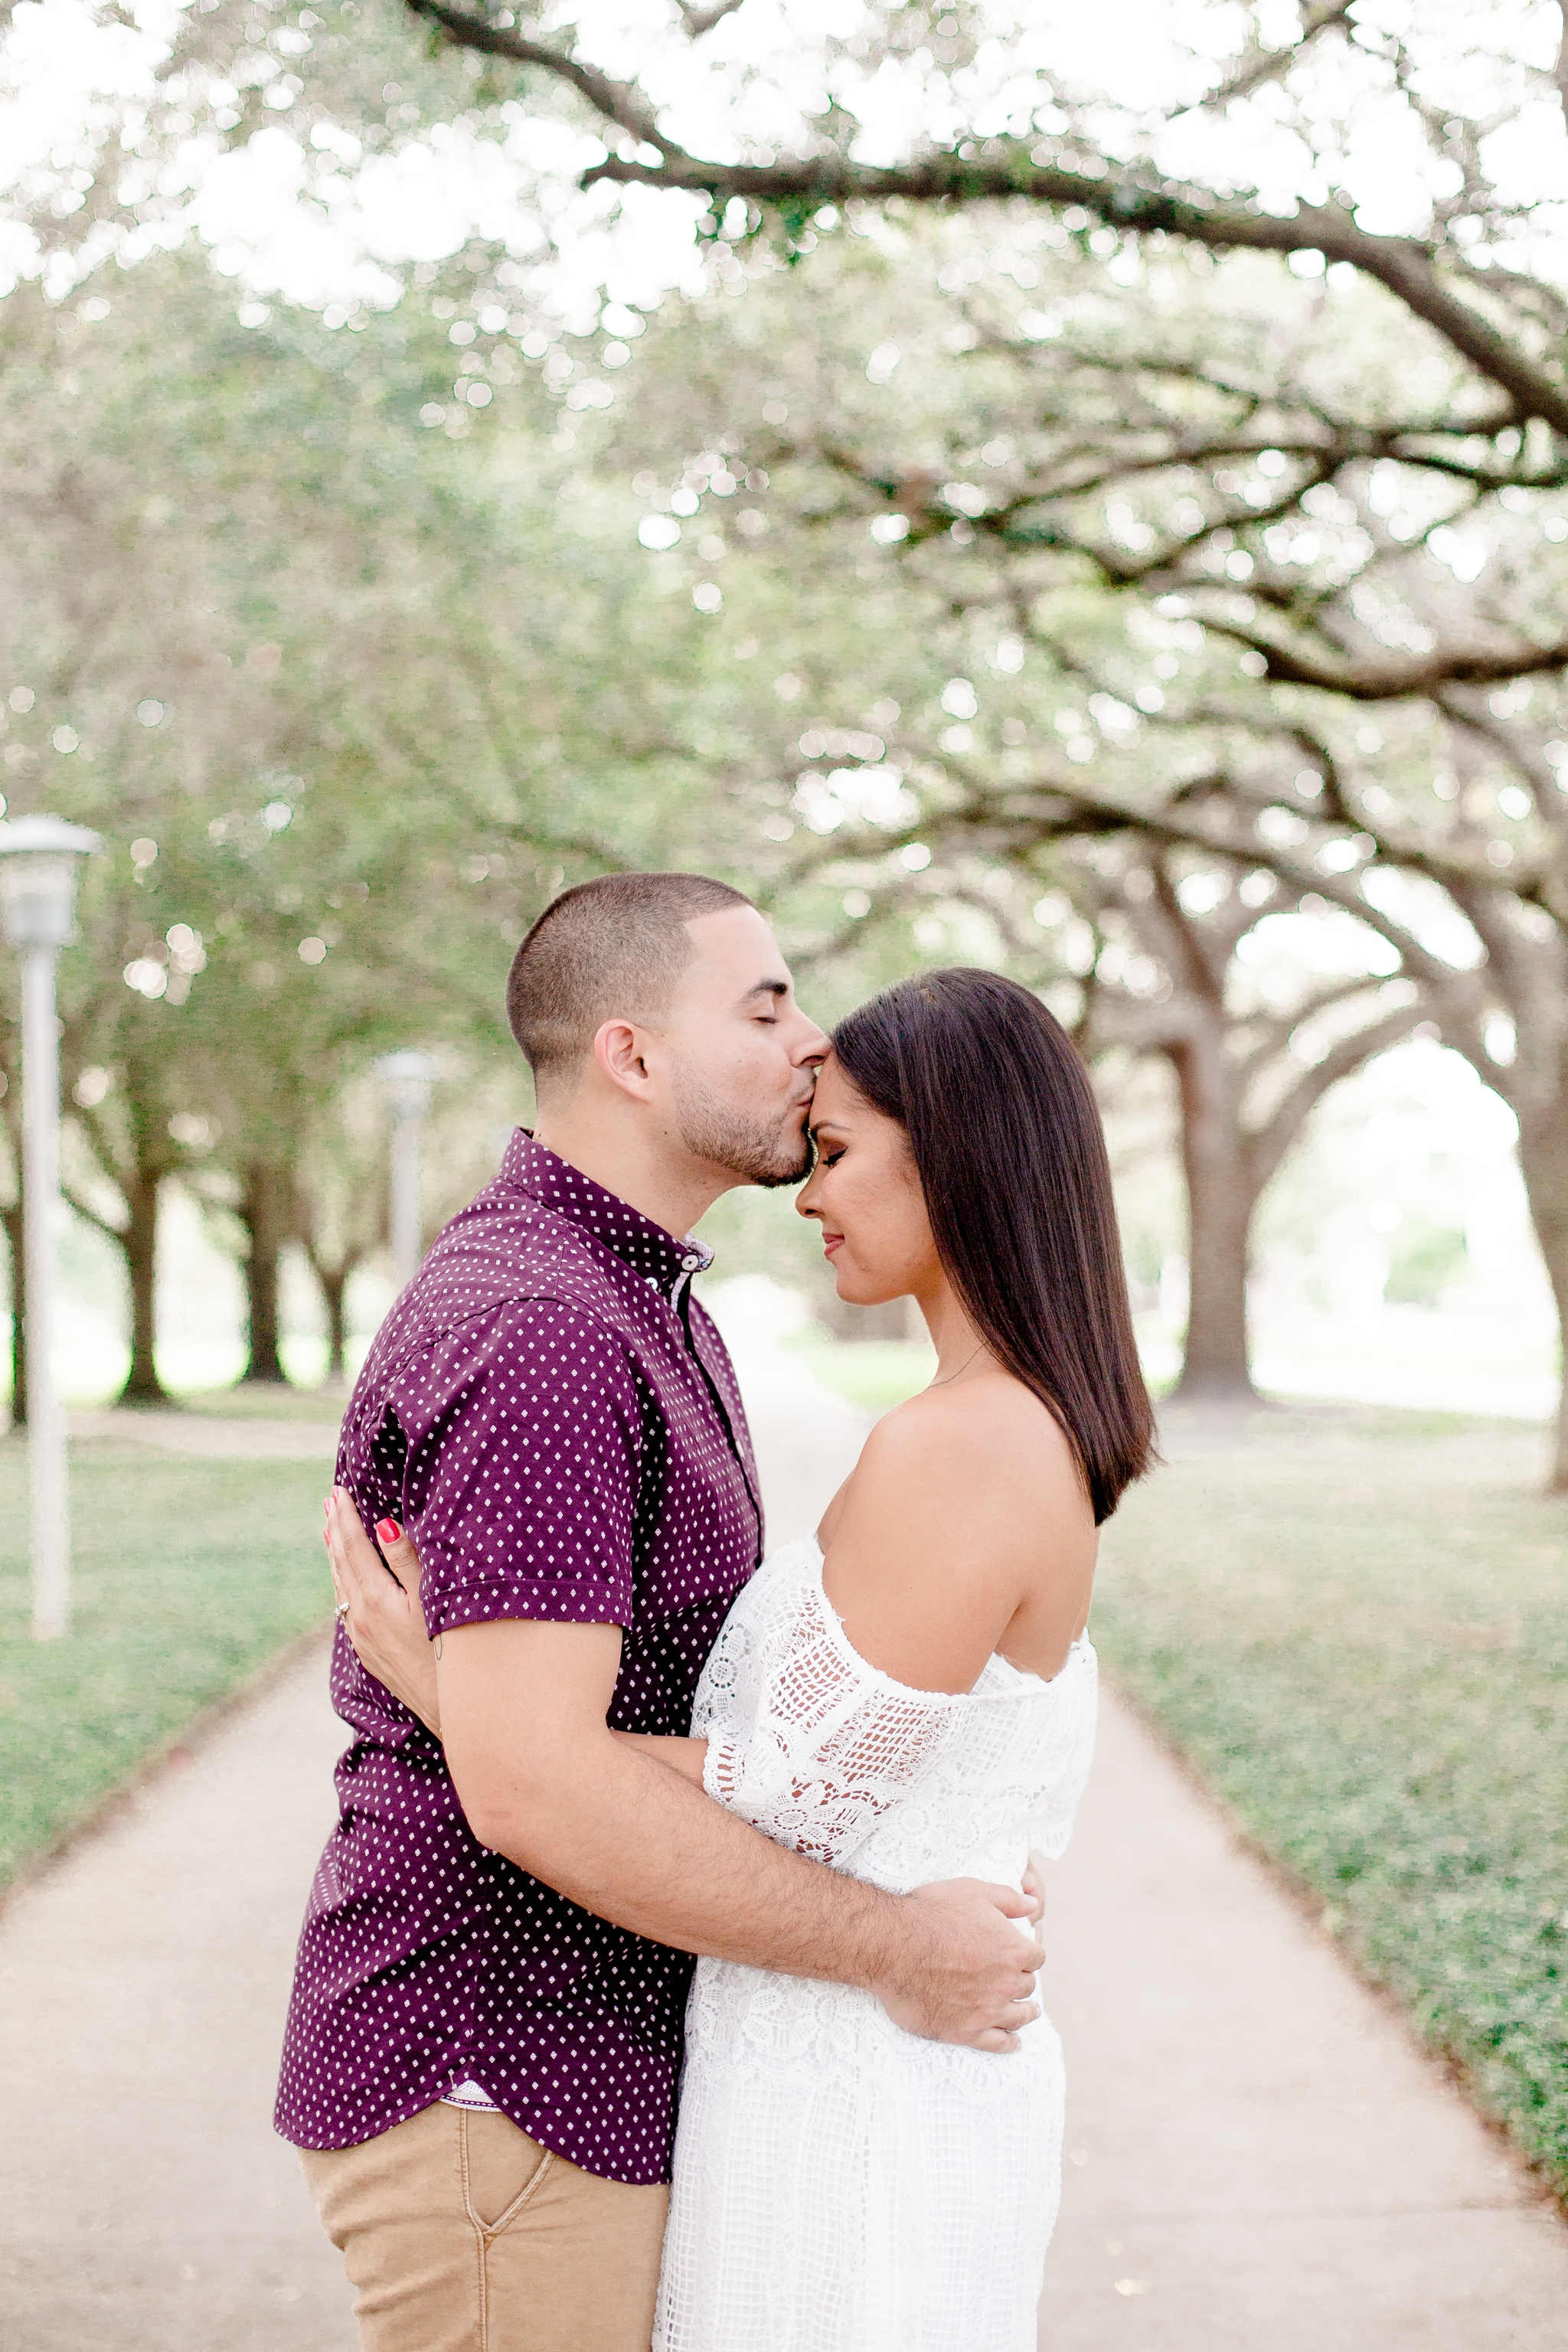 St-pete-florida-engagement-session-nicole-mike-I58A5160.jpg